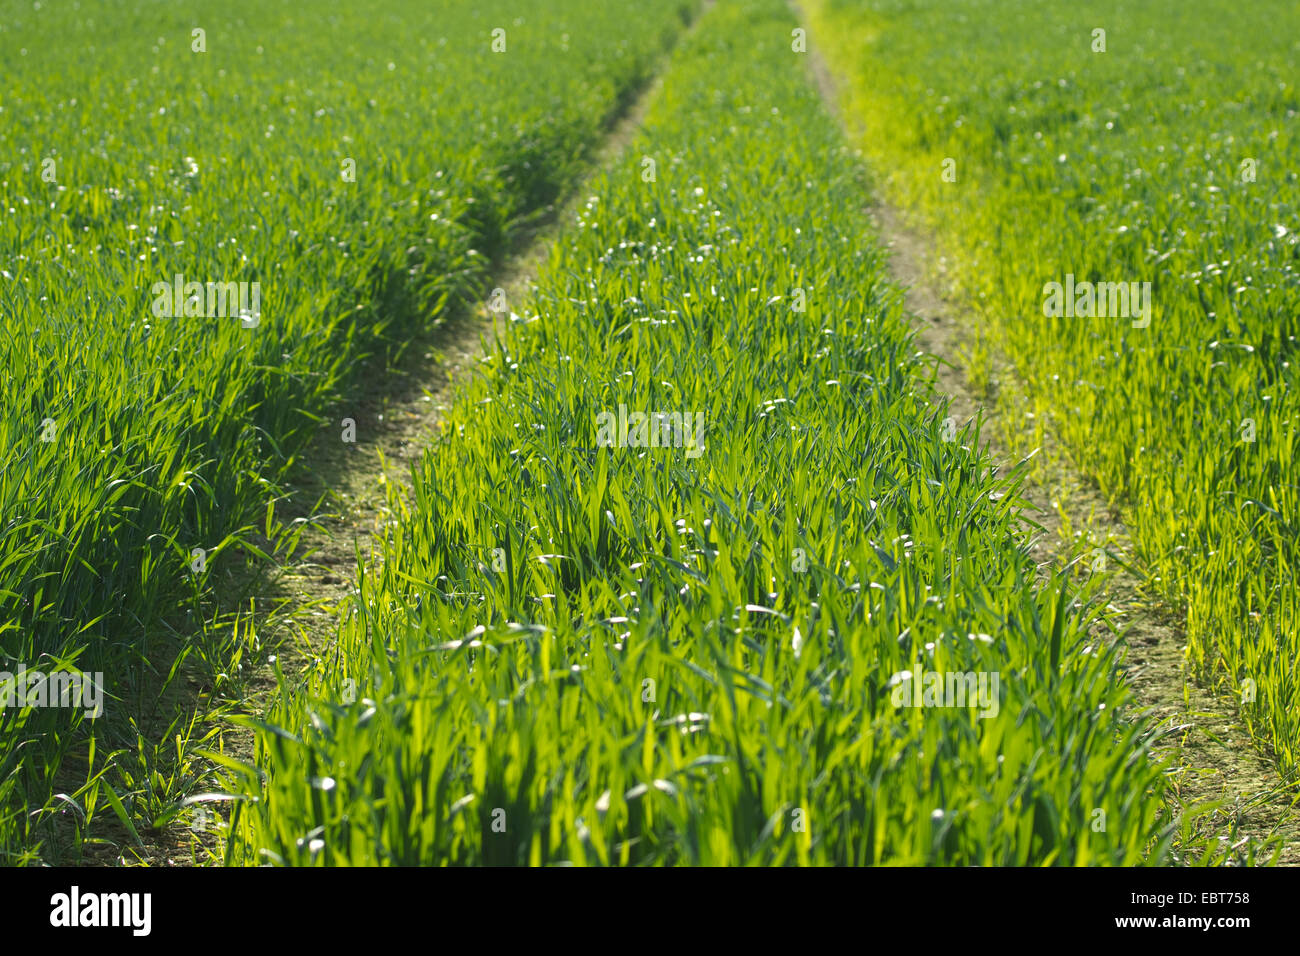 tractor lane conventional field without weeds, Germany, North Rhine-Westphalia, Muensterland - Stock Image